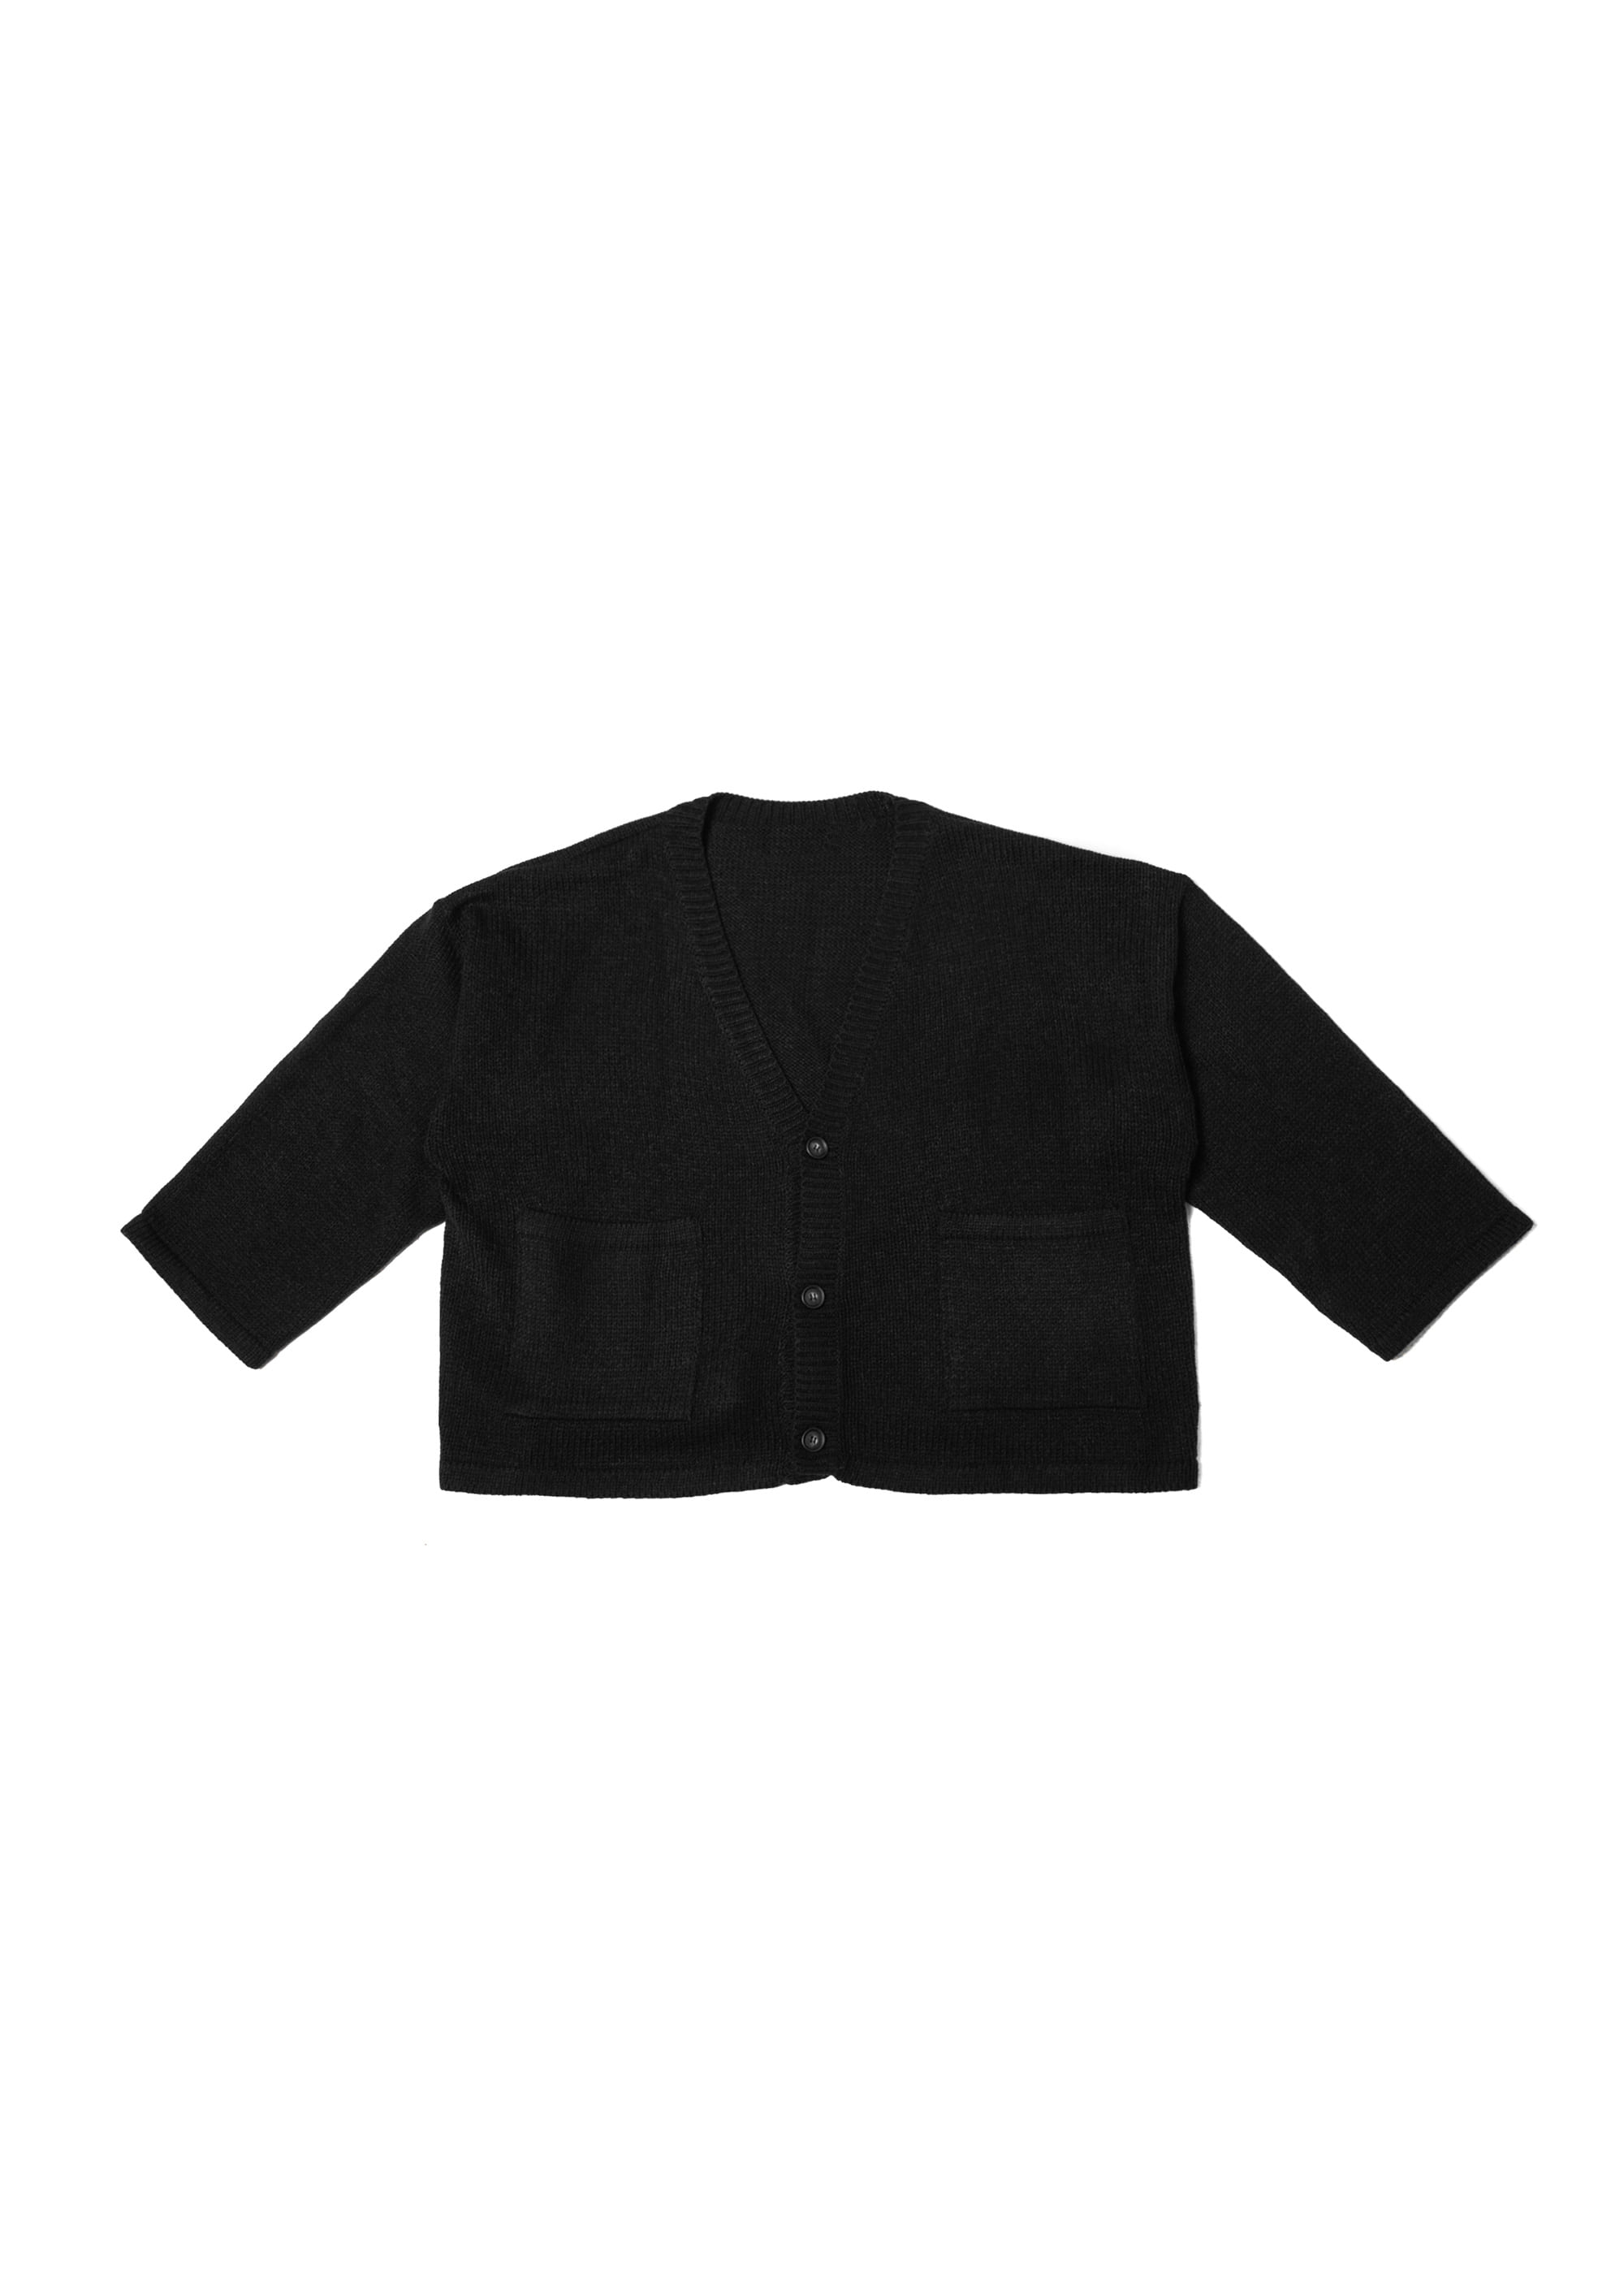 V-Neck Wide Knit Cardigan - Black